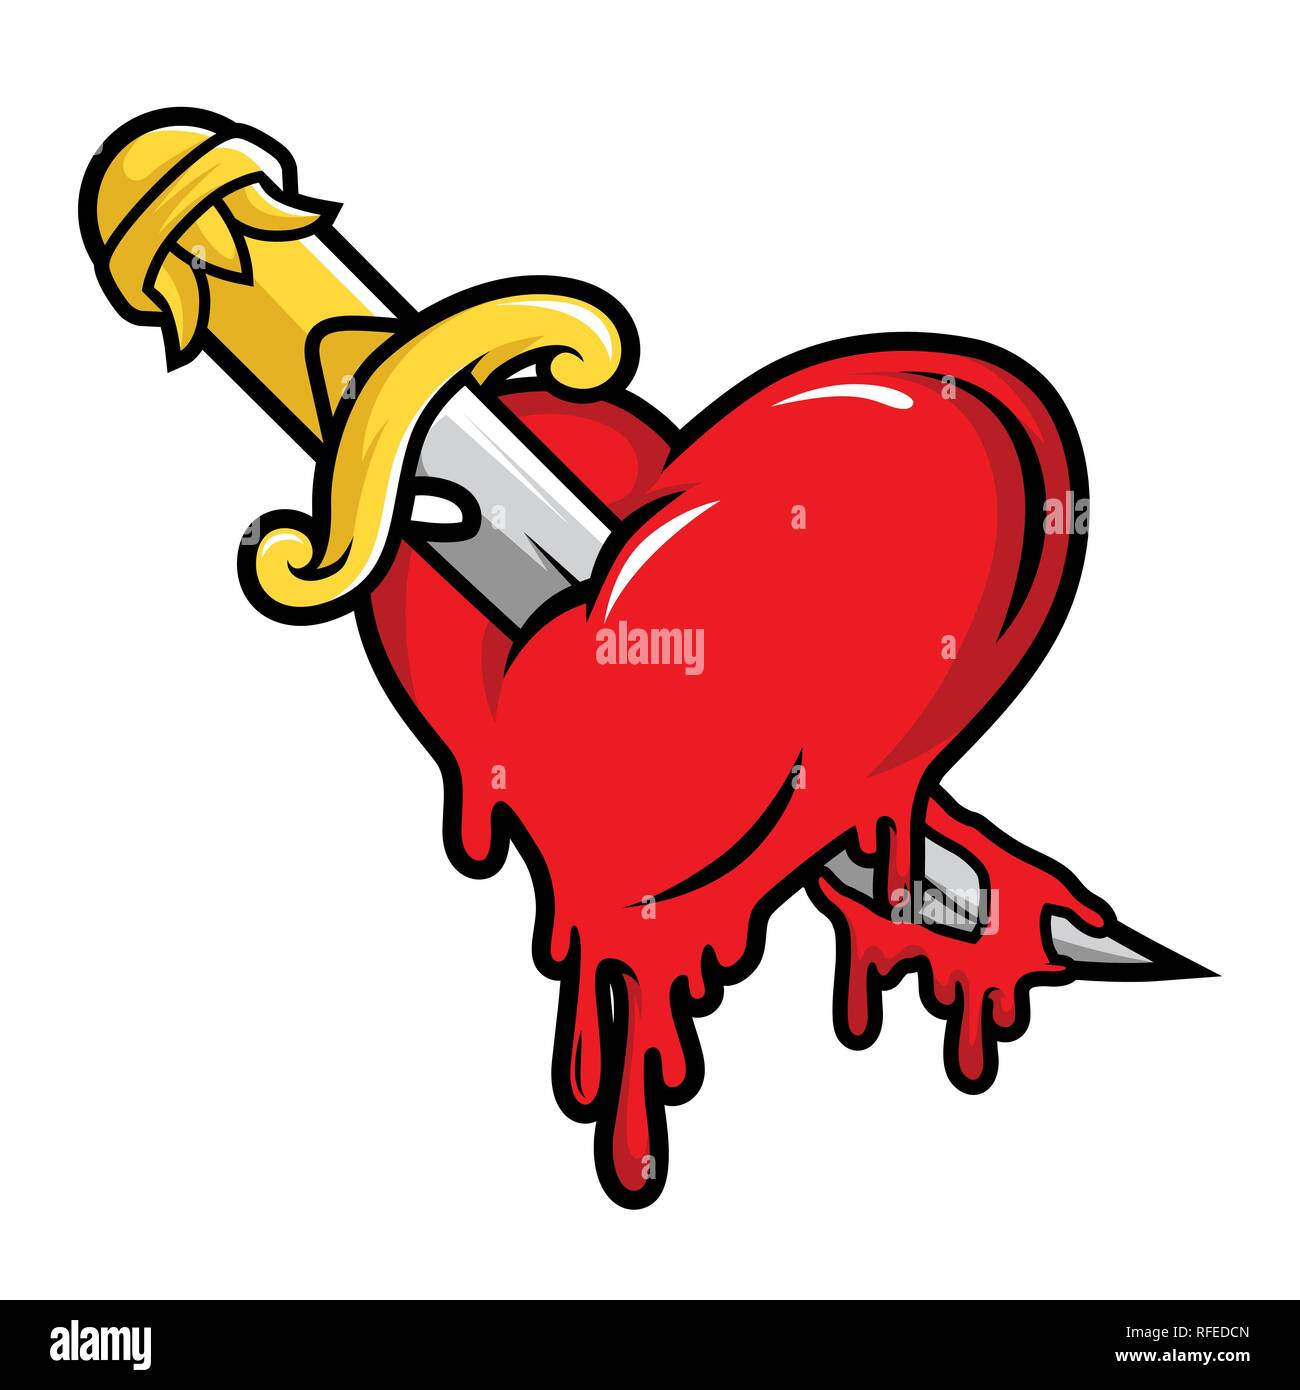 Dagger and Bloody Heart Illustration Vector in Cartoon Style - Stock Vector